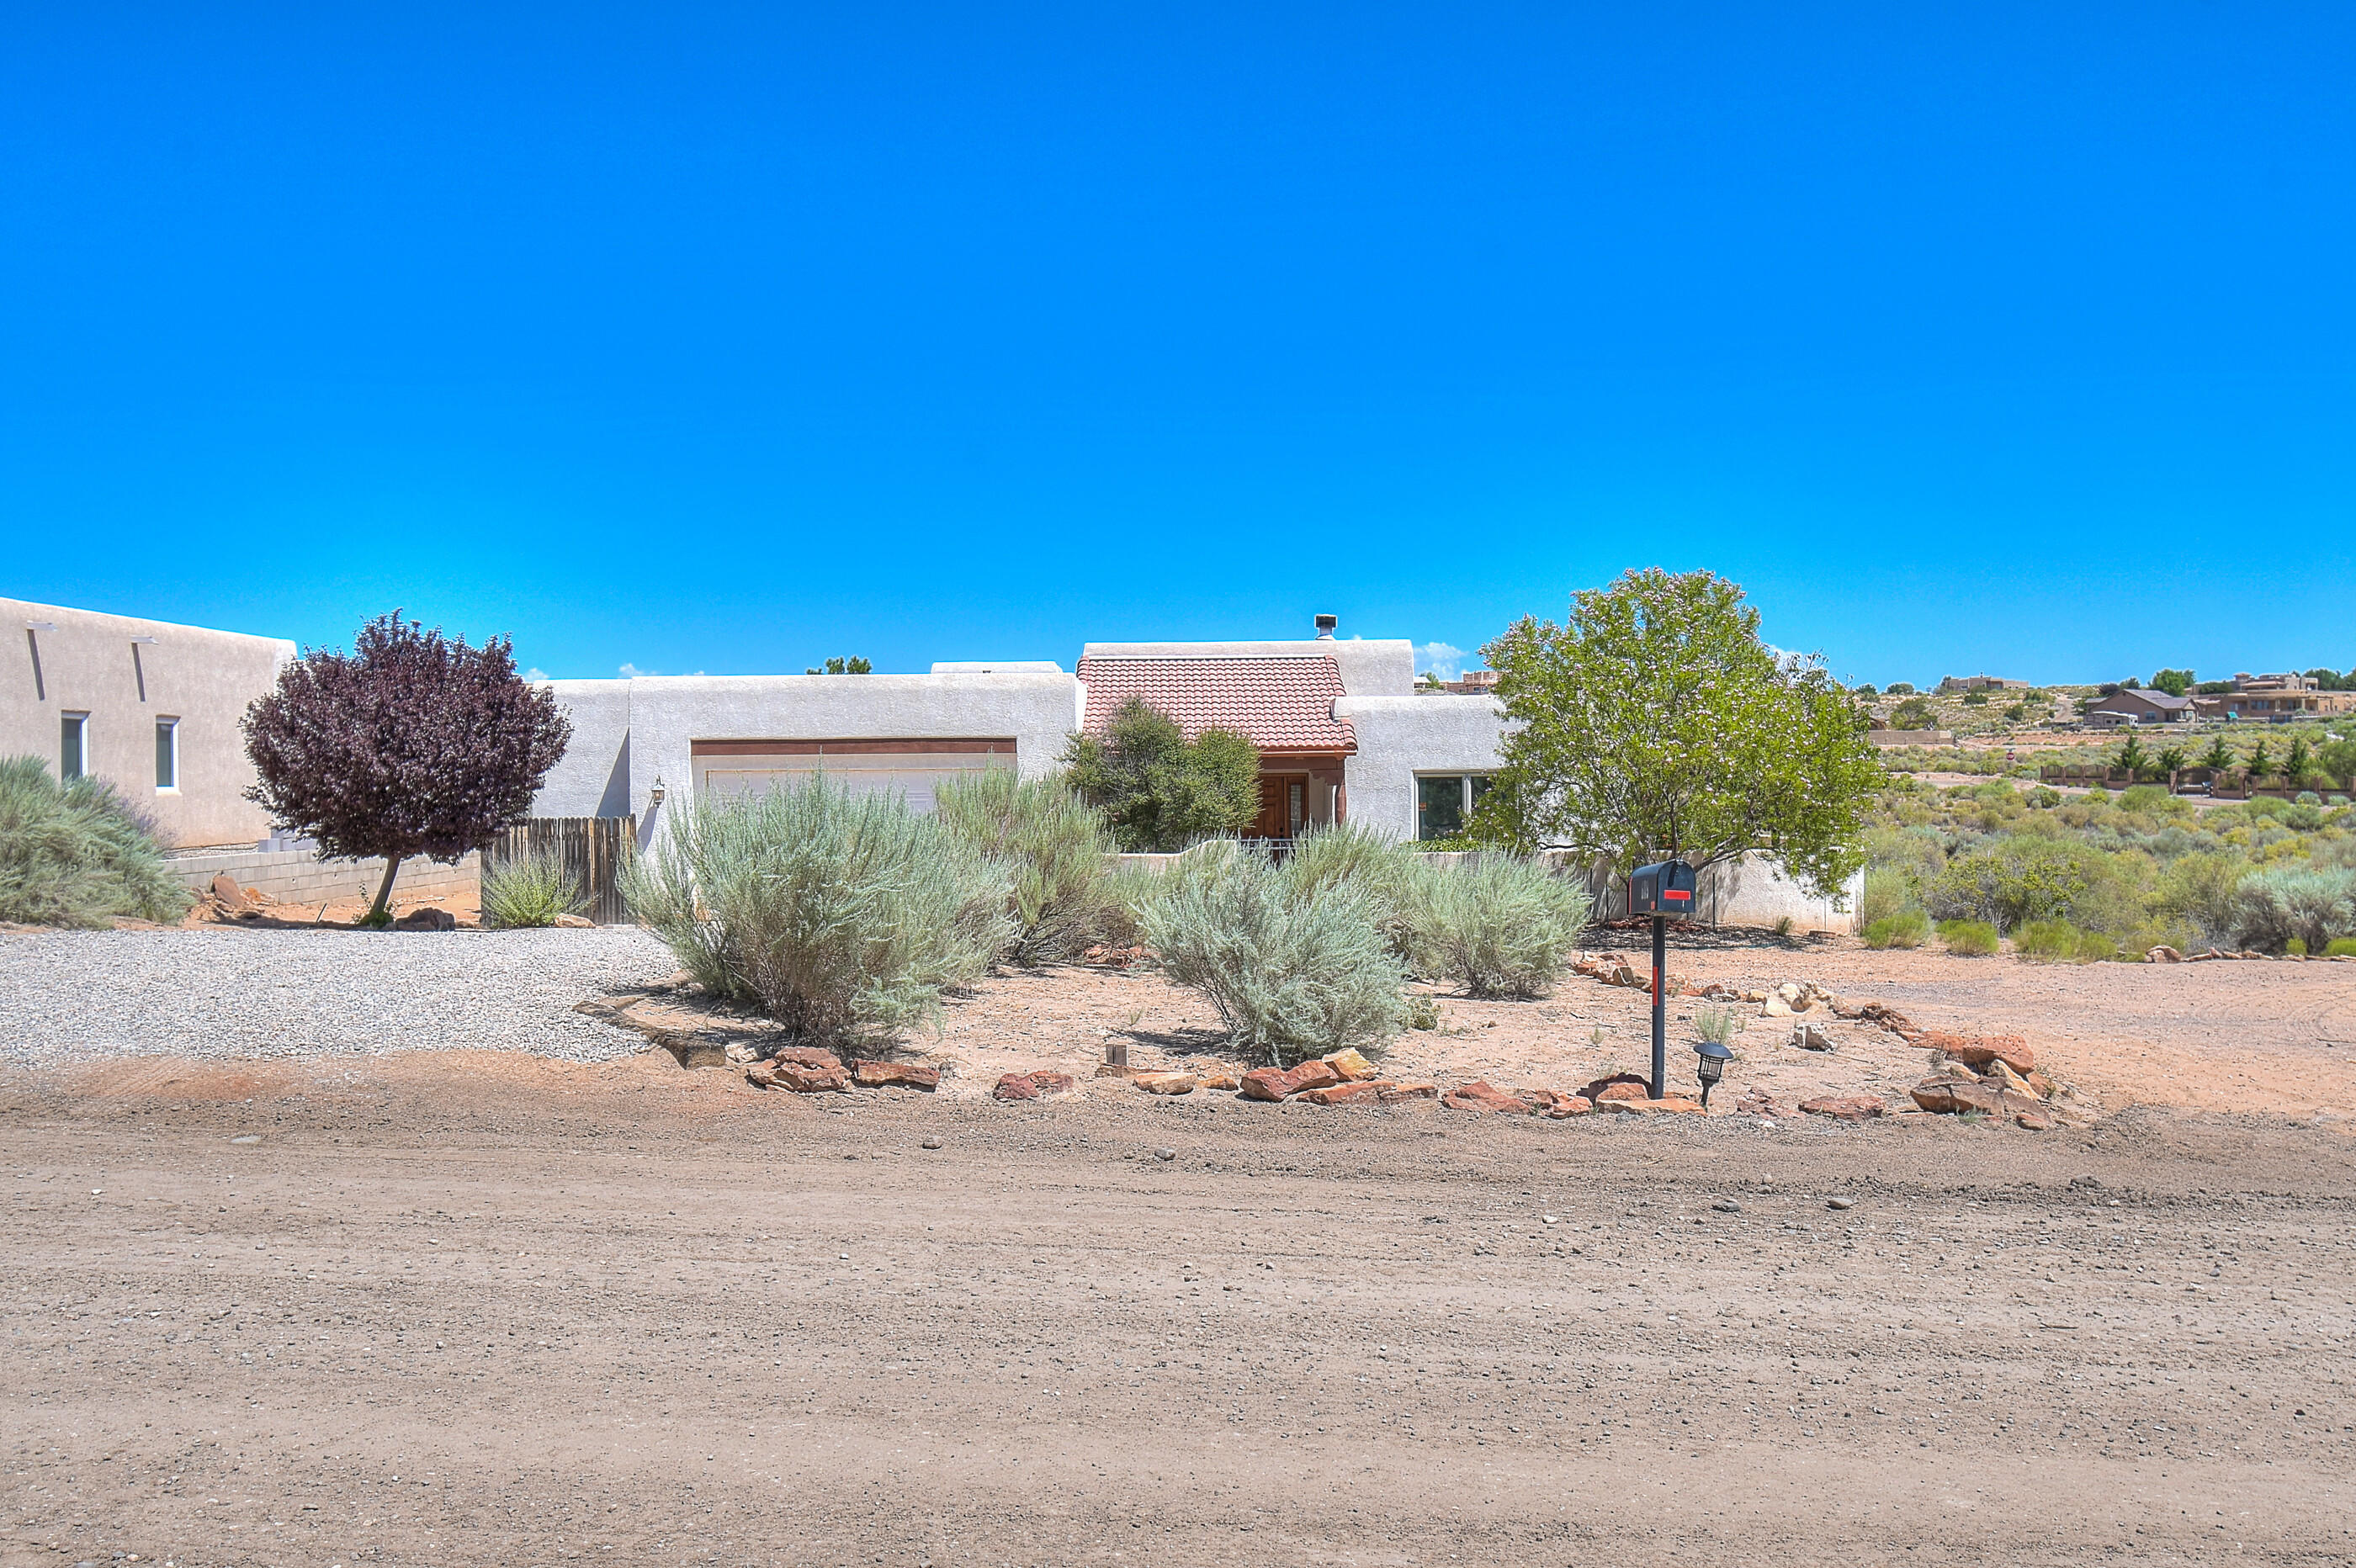 Stellar Quality & Craftsmanship in This Gorgeous Custom Home Located on a 1/2 Acre Lot w/Stunning Mtn Views! Many Fine Amenities Including 3BR+Flex Room, 3BA, HW Floors & Carpet,Great Room, Formal Dining, Gas Log Fireplace, Recessed Lighting & Designer Touches Throughout, Cool Refrigerated Air,Laundry Room W/Desk, And Much More! Chef's Delight Kitchen w/Breakfast Bar, Granite Counters, Tile Backsplash, Stainless Steel Appliances,Gas Range Stove,Wine Rack&Pantry. Fabulous Master Suite Boasts A Luxurious Bathroom, Huge Walk In Closet,Tiled Shower And His & Hers Vanities. Two Spacious Rooms & Full Bath To Follow! Beautiful Courtyard W/ Xeriscaped Landscaping in Front & Two Covered Patios In Back Add To The Magnificence of This Spectacular Home. Come See It Today!